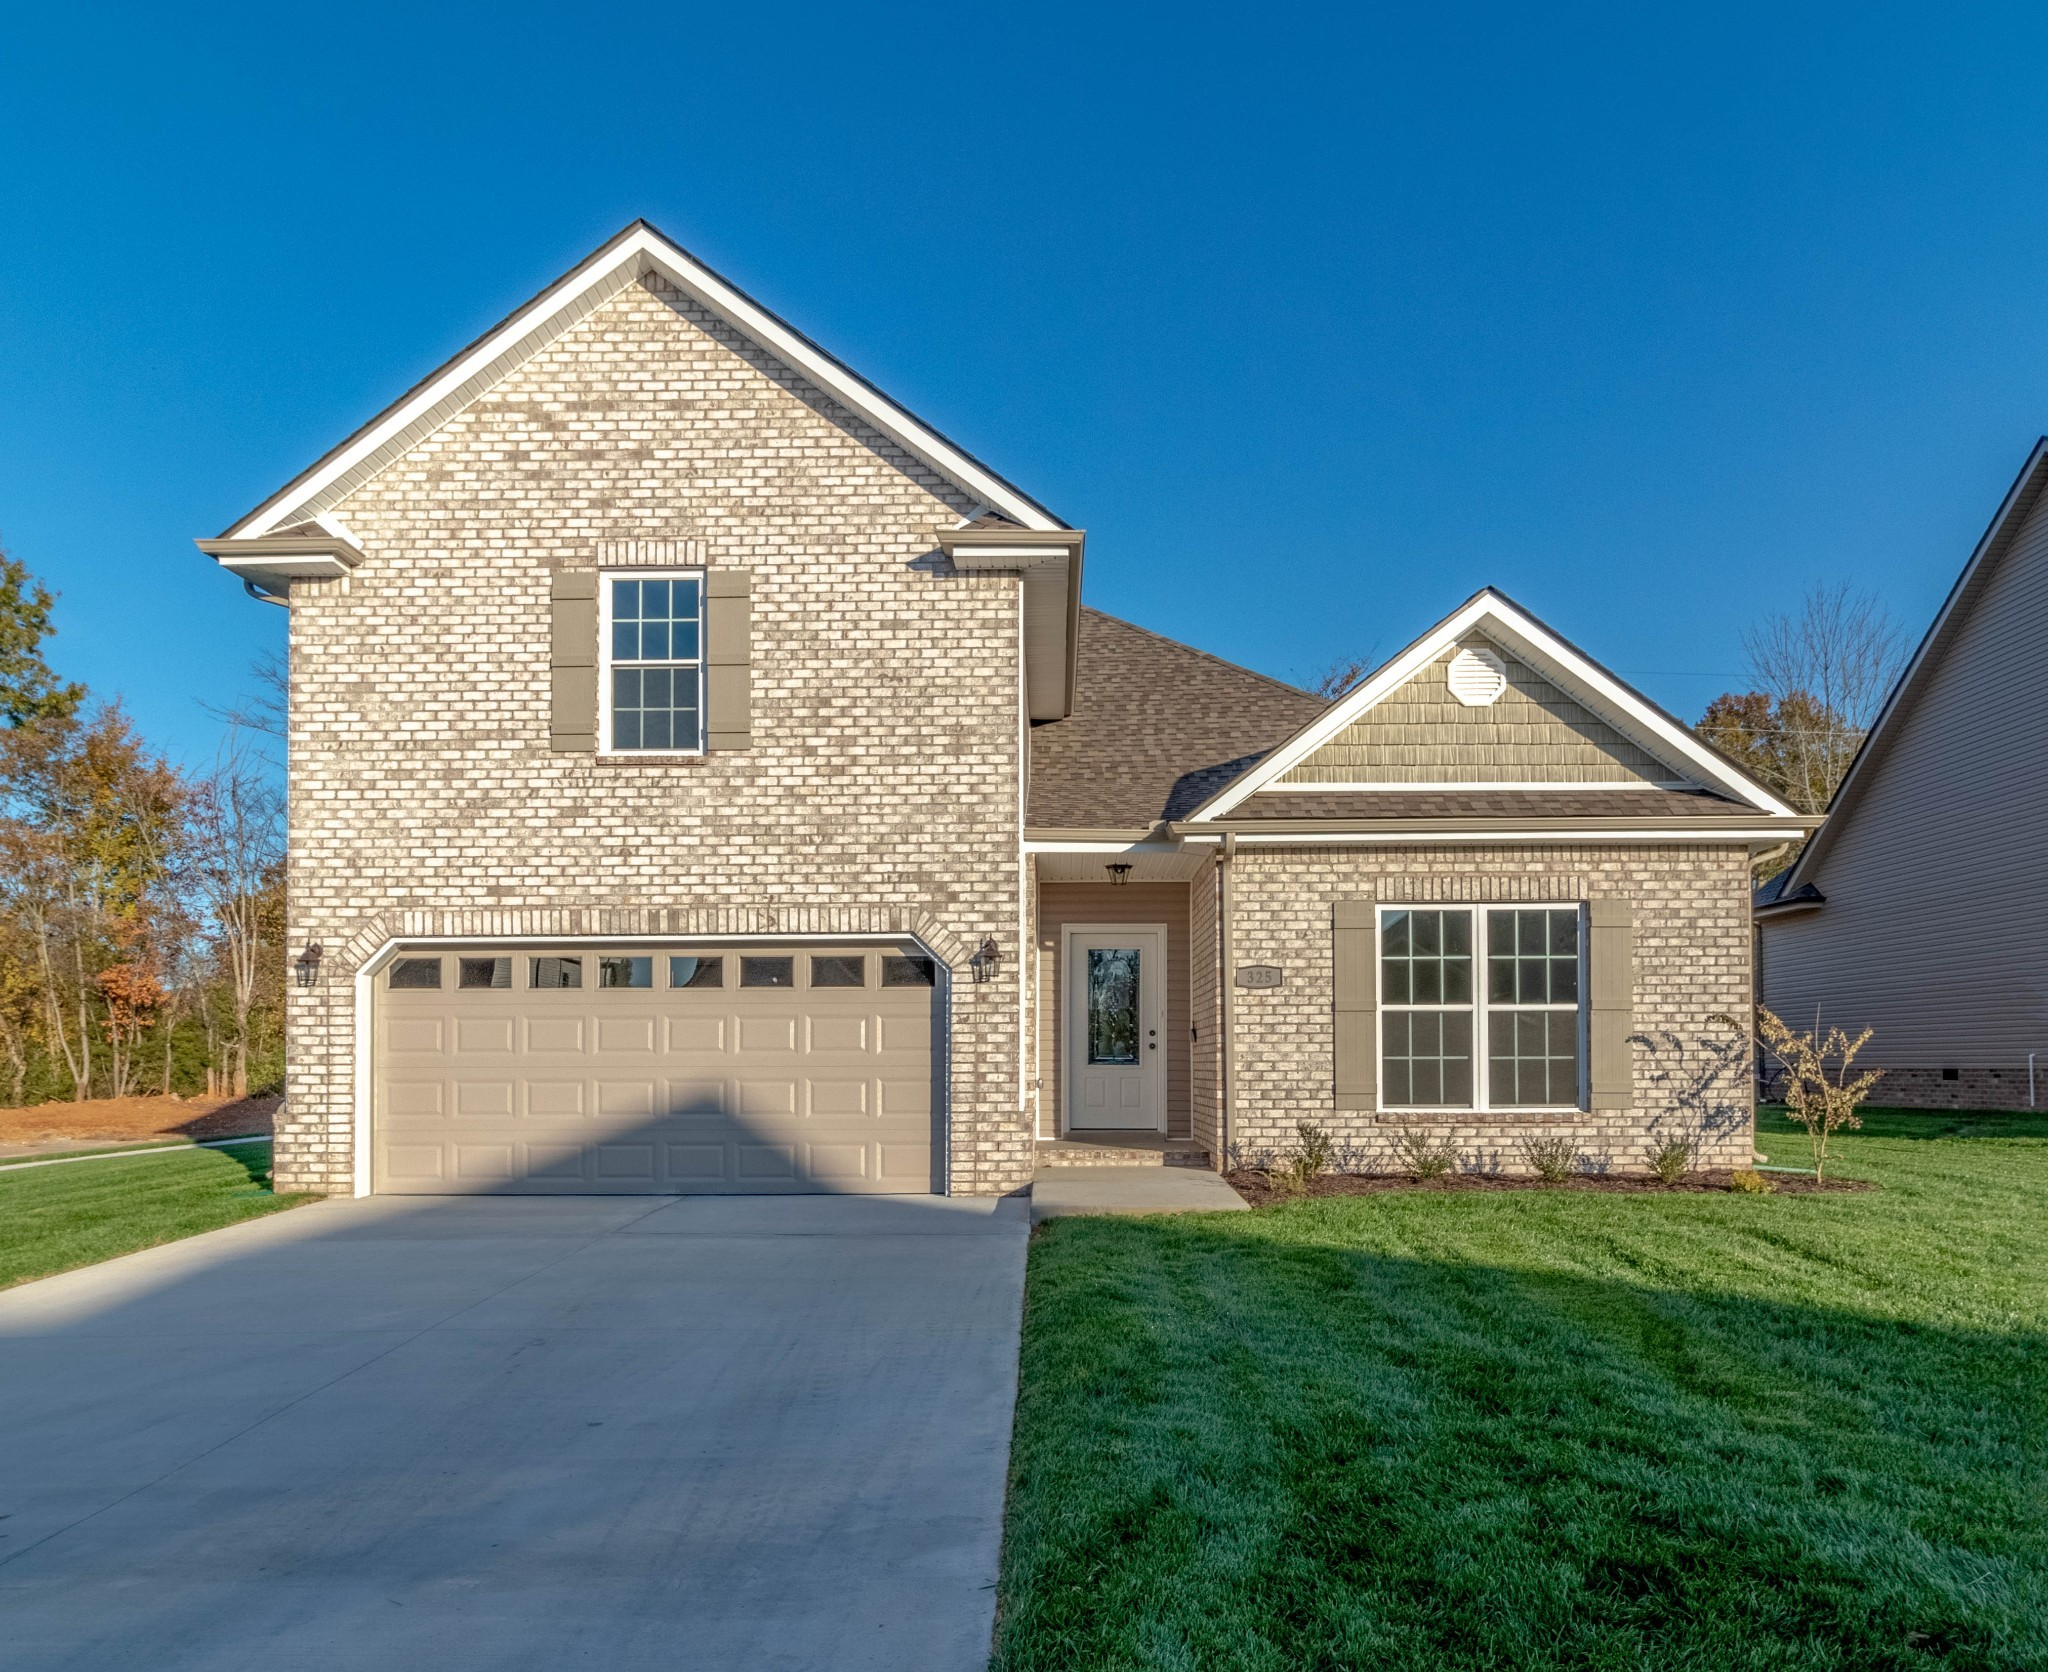 341 Chase Dr Property Photo - Clarksville, TN real estate listing